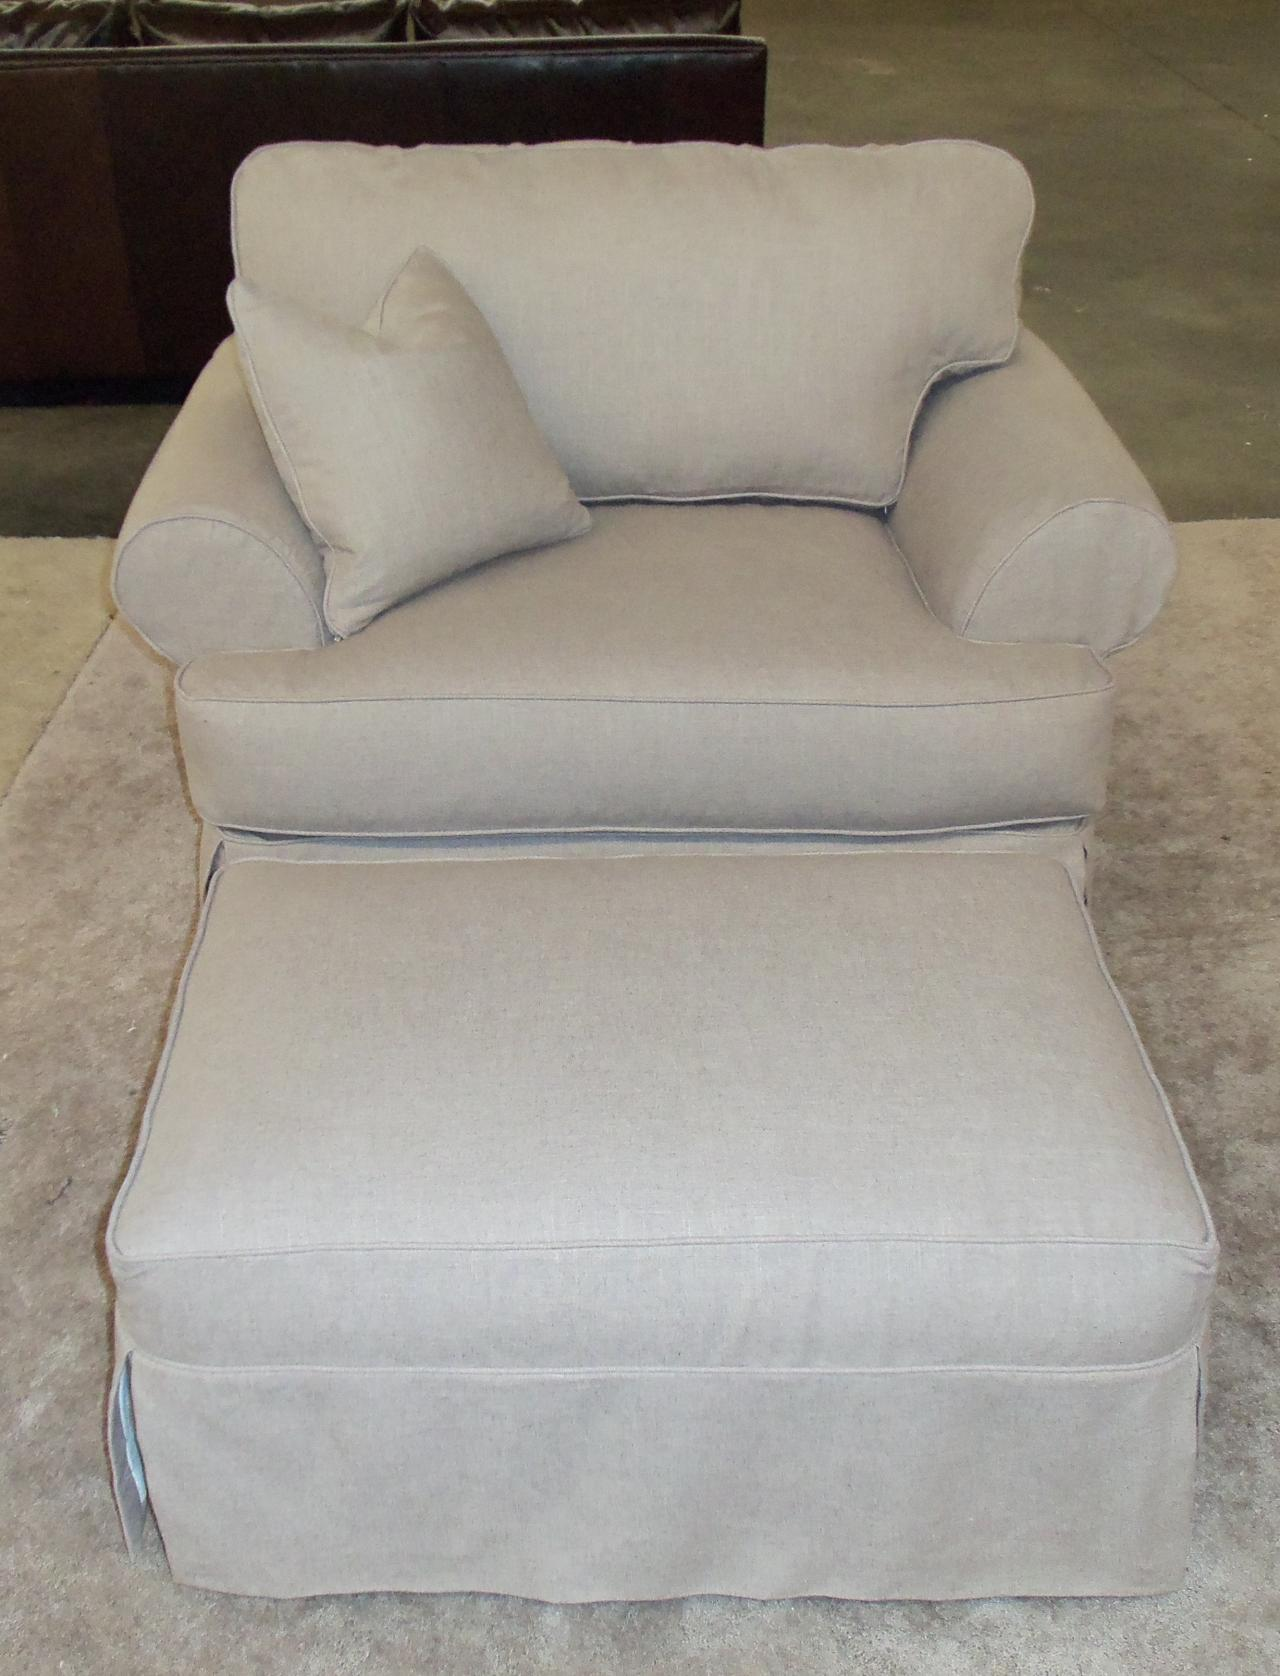 Barnett Furniture Rowe furniture Addison slipcover